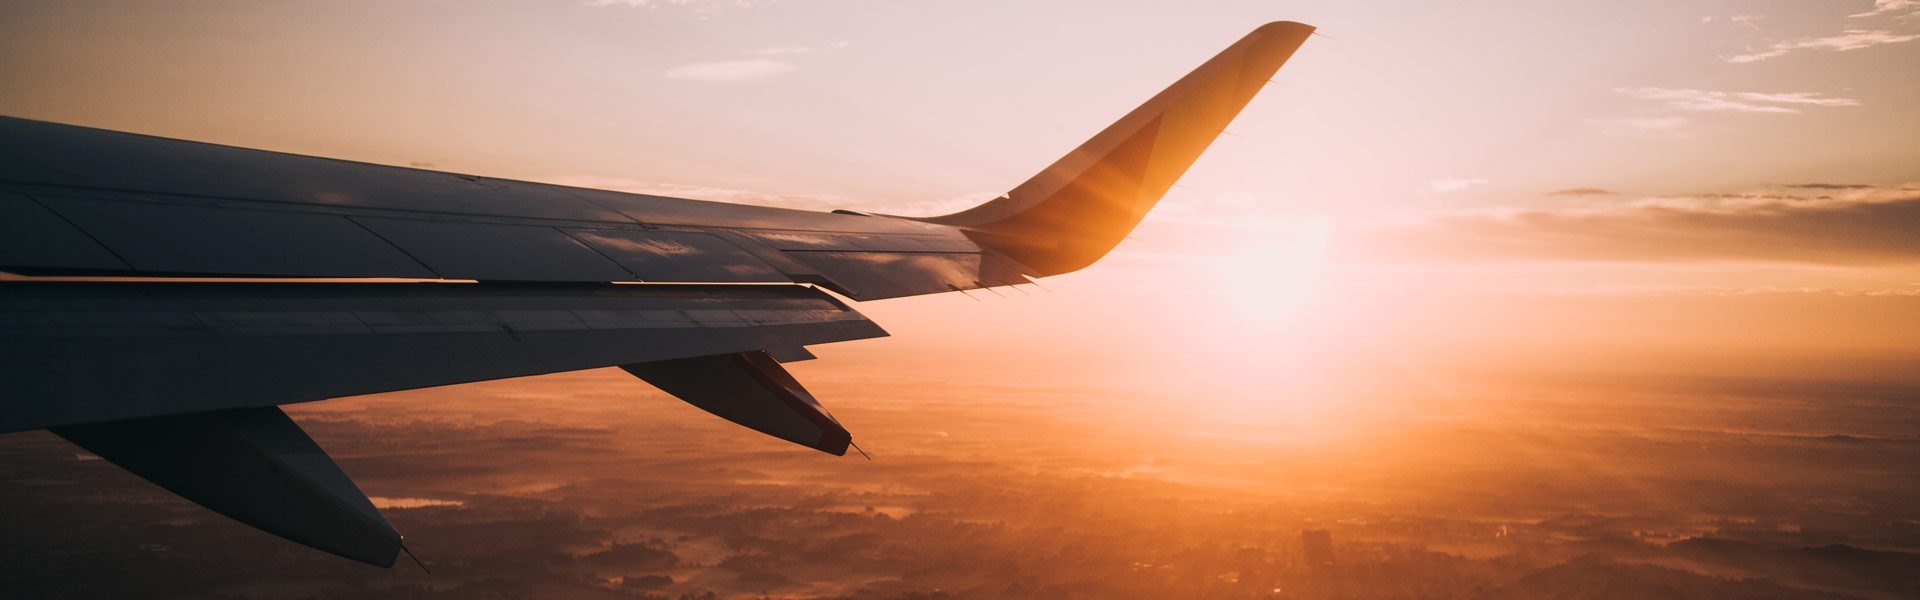 Airplane wing at Sunset